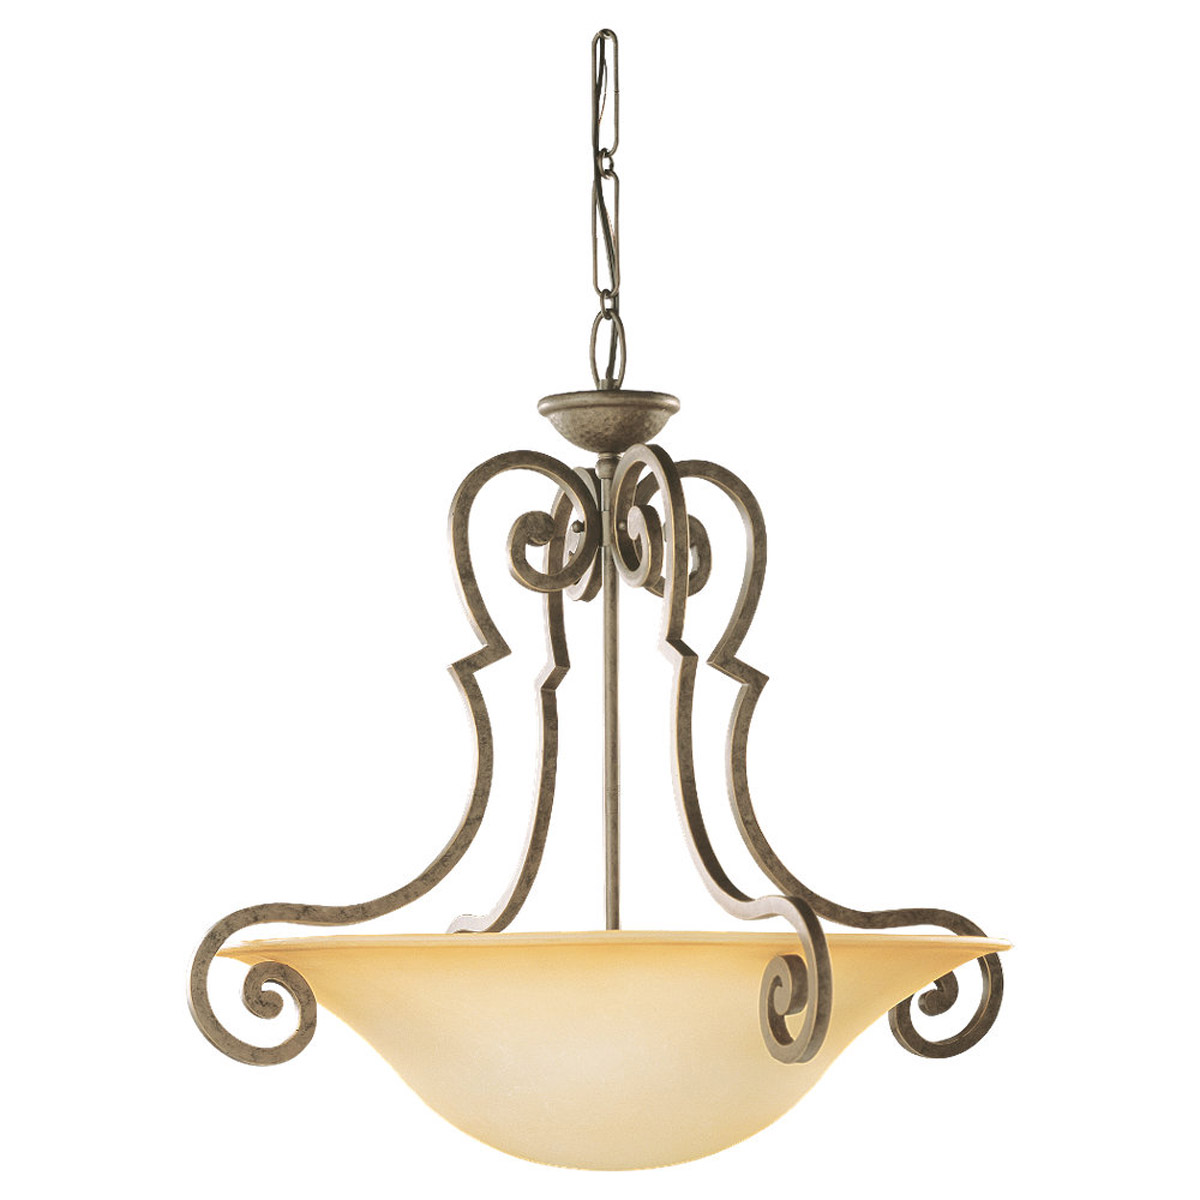 Sea Gull Lighting Brandywine 3 Light Pendant in Antique Bronze 65431-71 photo